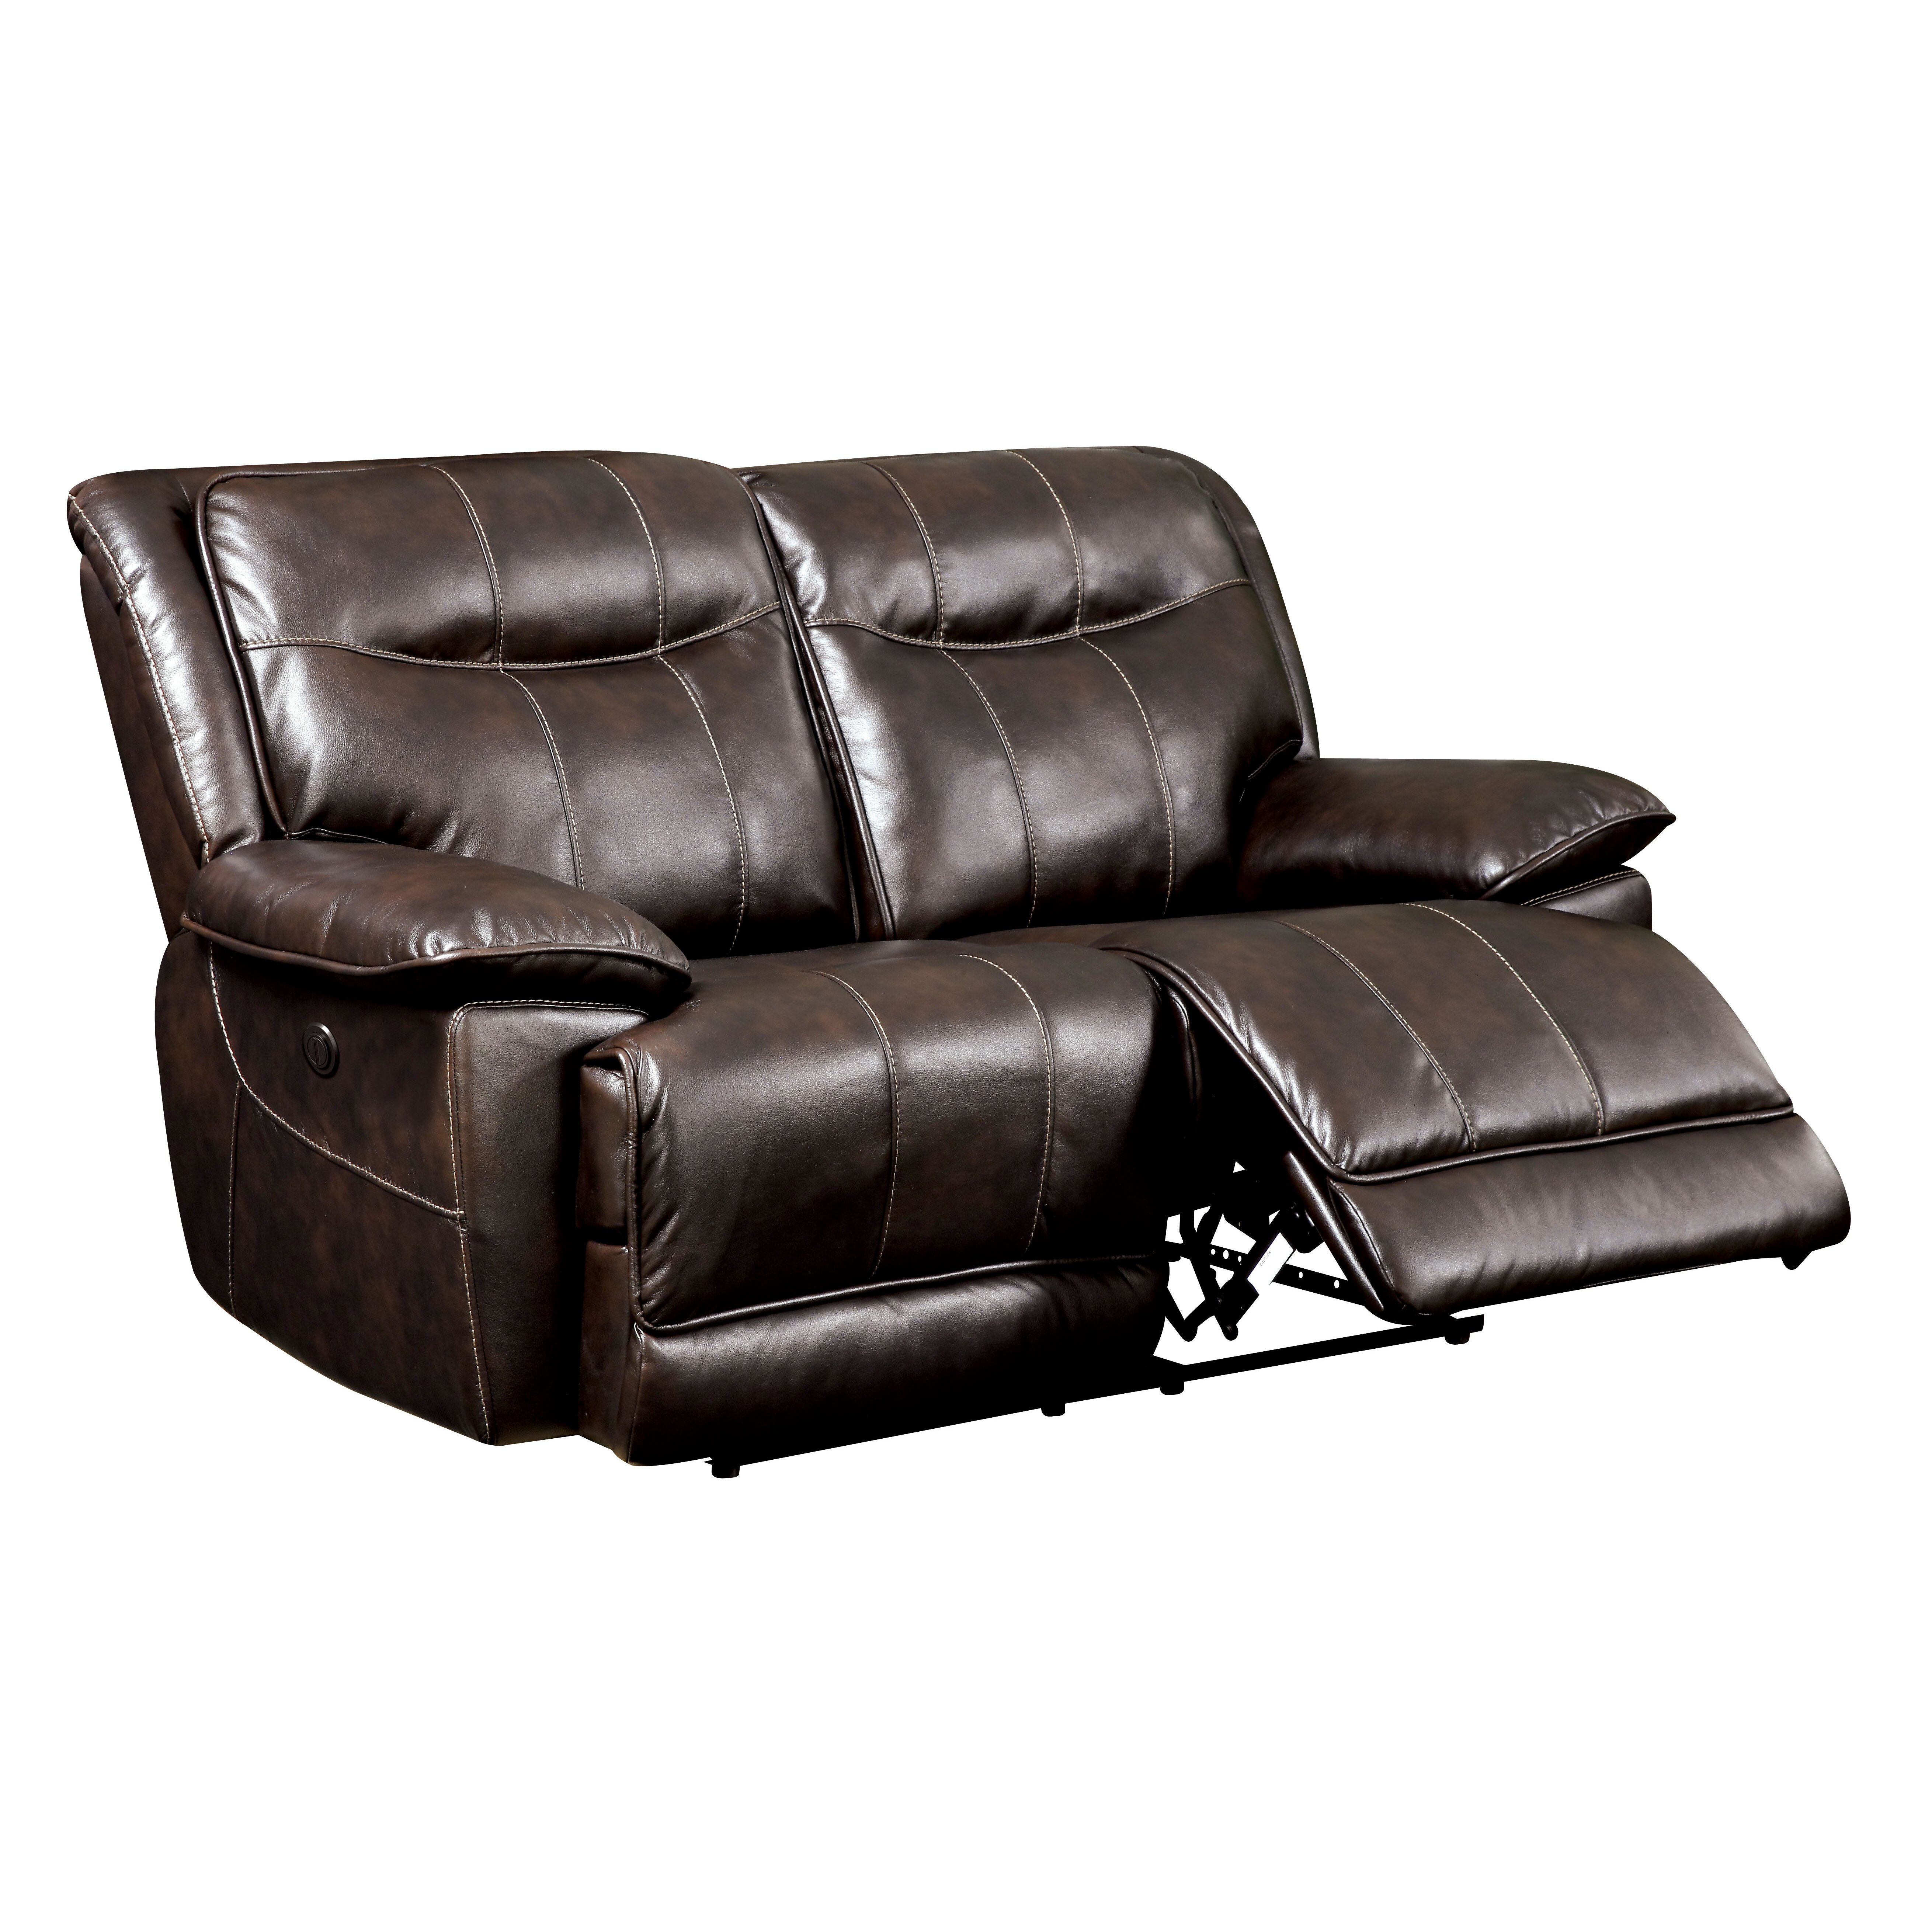 Darby Home Co Reinhart Leather Reclining Loveseat Wayfair